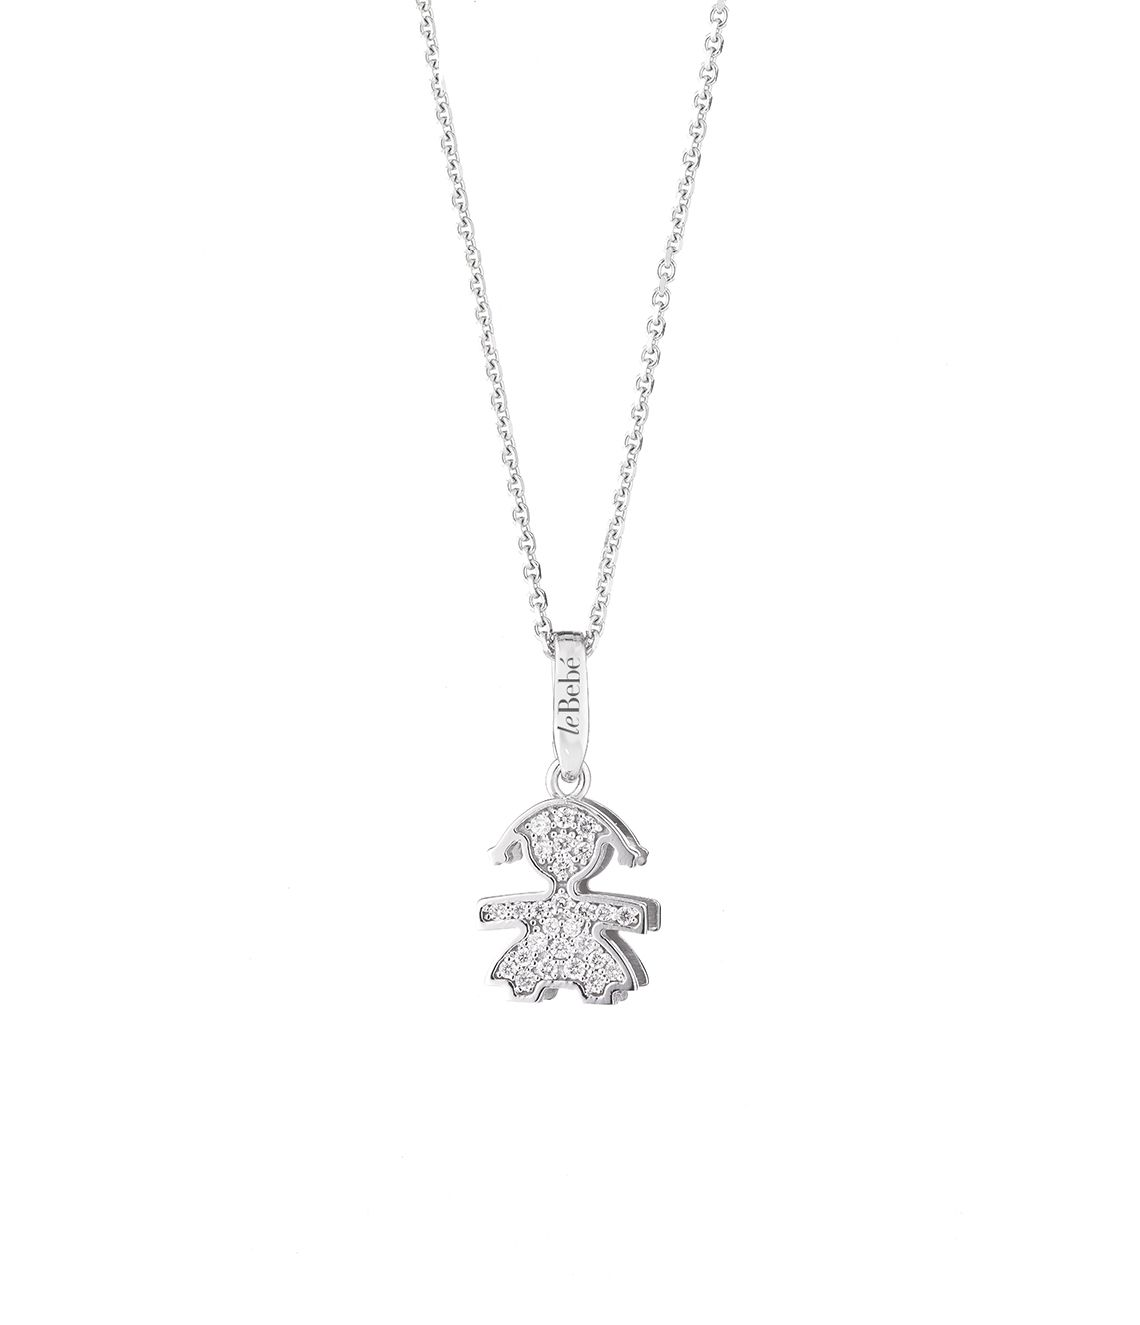 Diamond Pave Girl Mini Silhouette Pendant On Gold Chain For Mom Le Bebe Jewelry